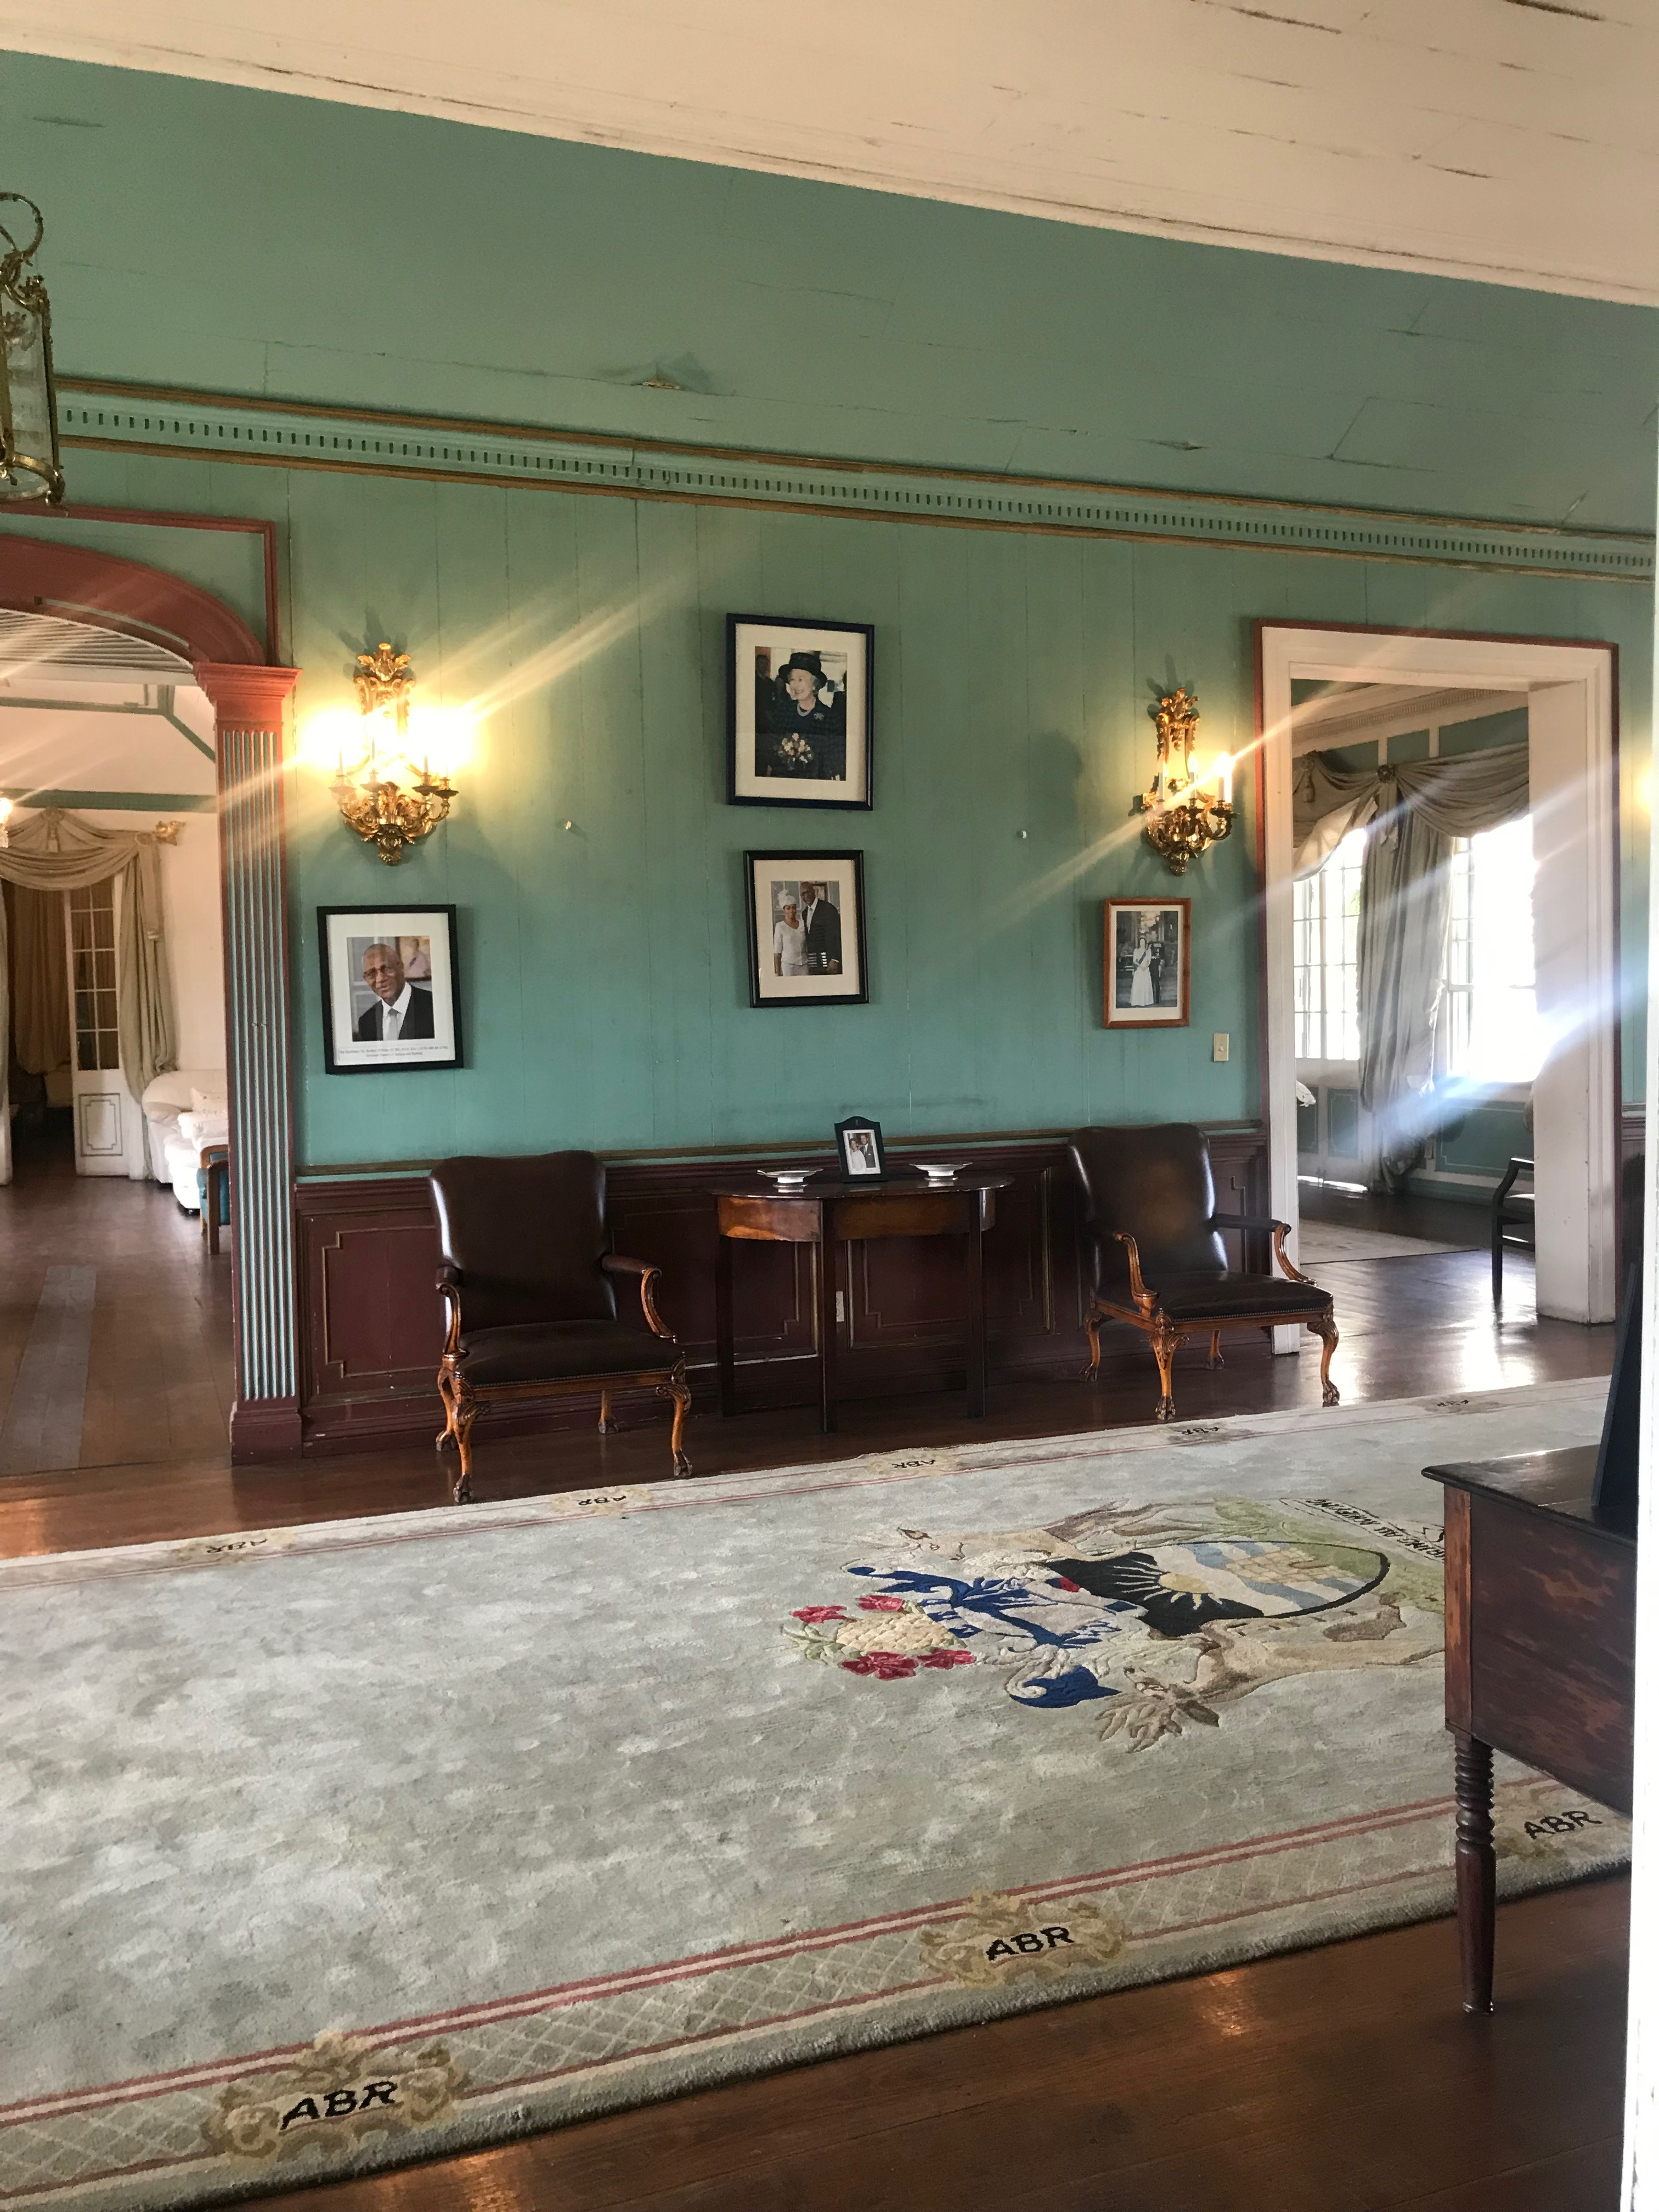 The entrance hall in the main house with photographs of the Governor General and Queen Elizabeth II